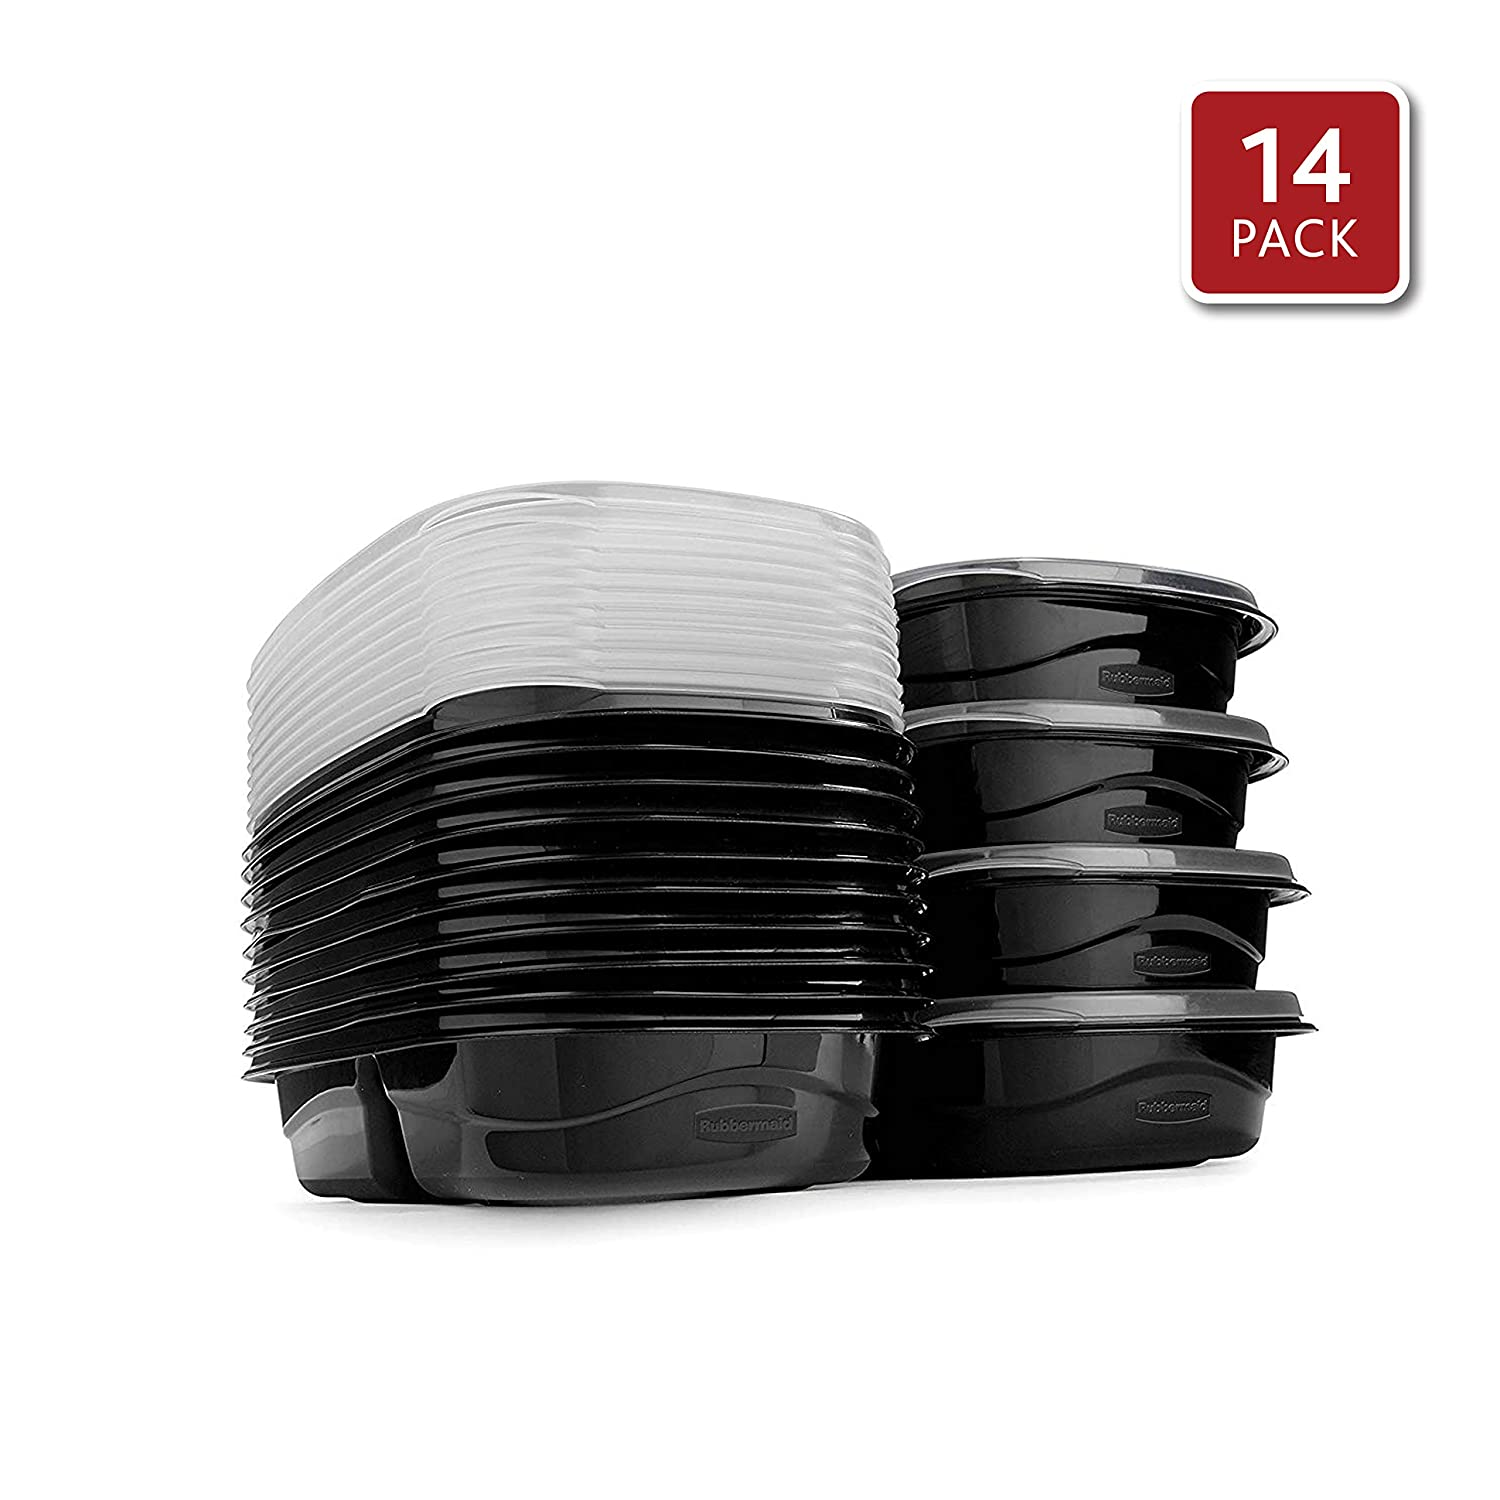 Rubbermaid TakeAlongs Food Storage Containers with Divided Base, 3.7 Cup, Set of 7 (14 Pieces Total), Black | Great for Meal Prep, Lunch for Adults & Kids, Bento Box Style | Reusable & Stackable